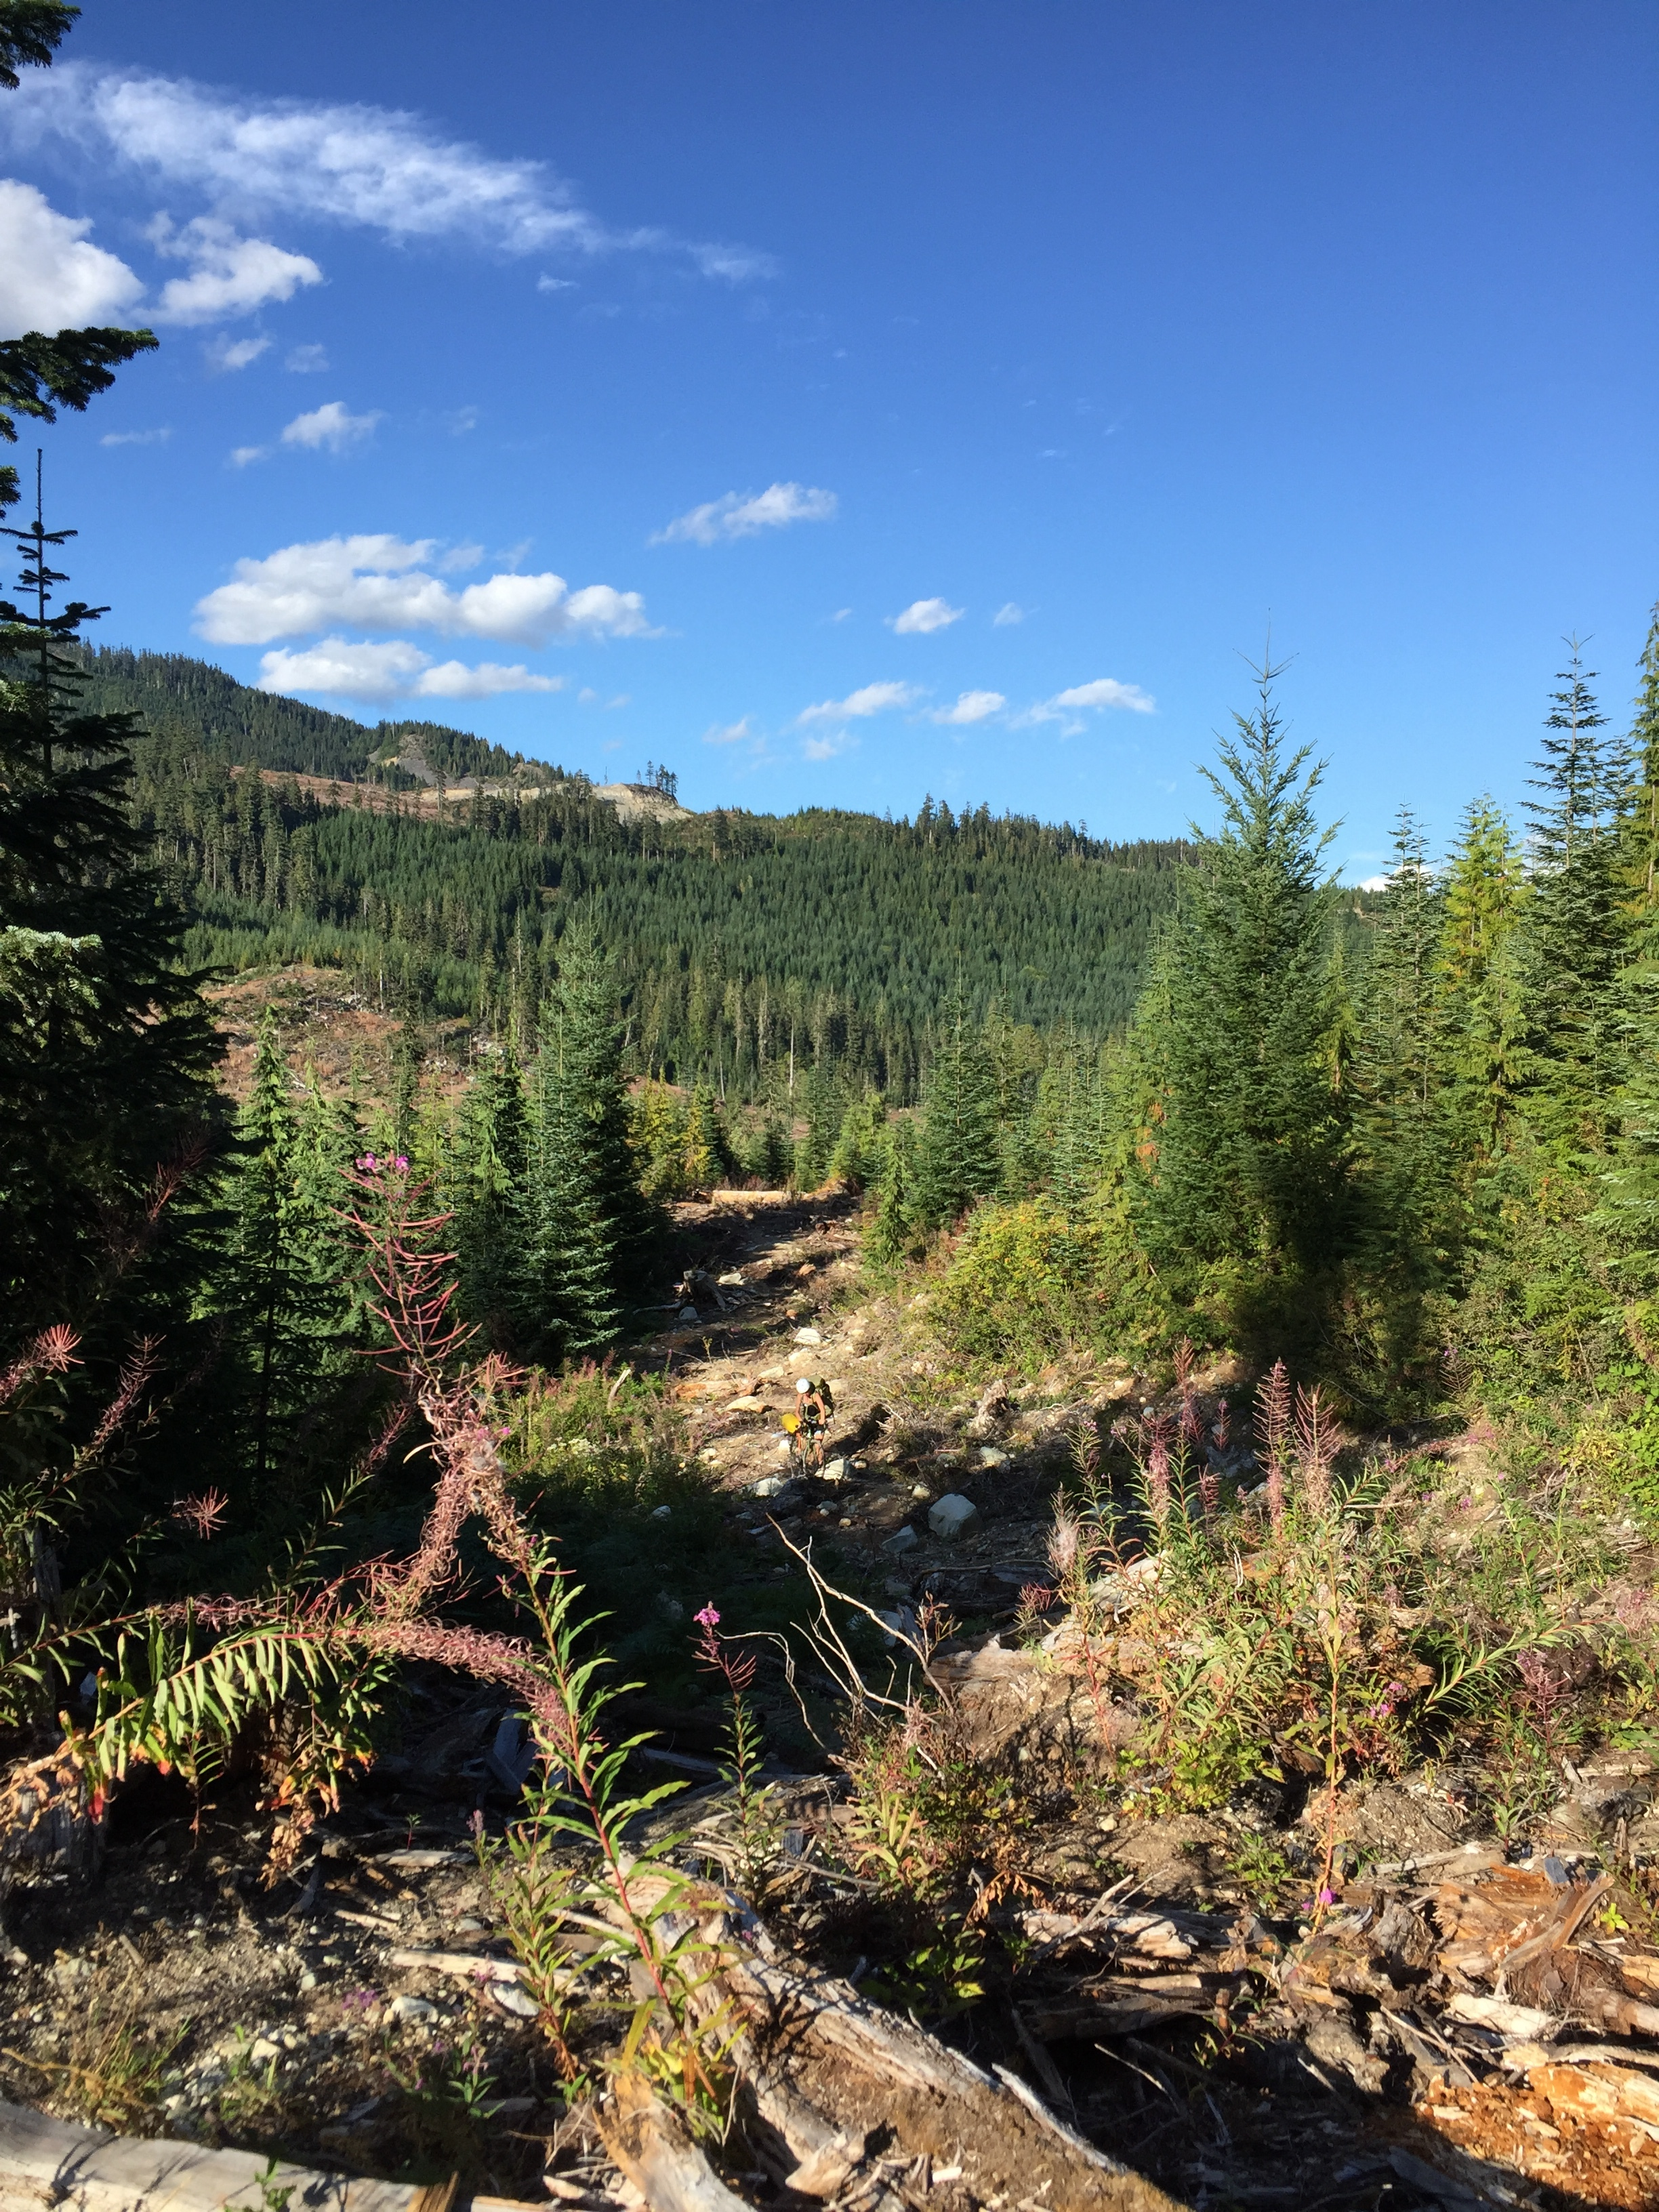 Crossing the gap between the two logging roads.